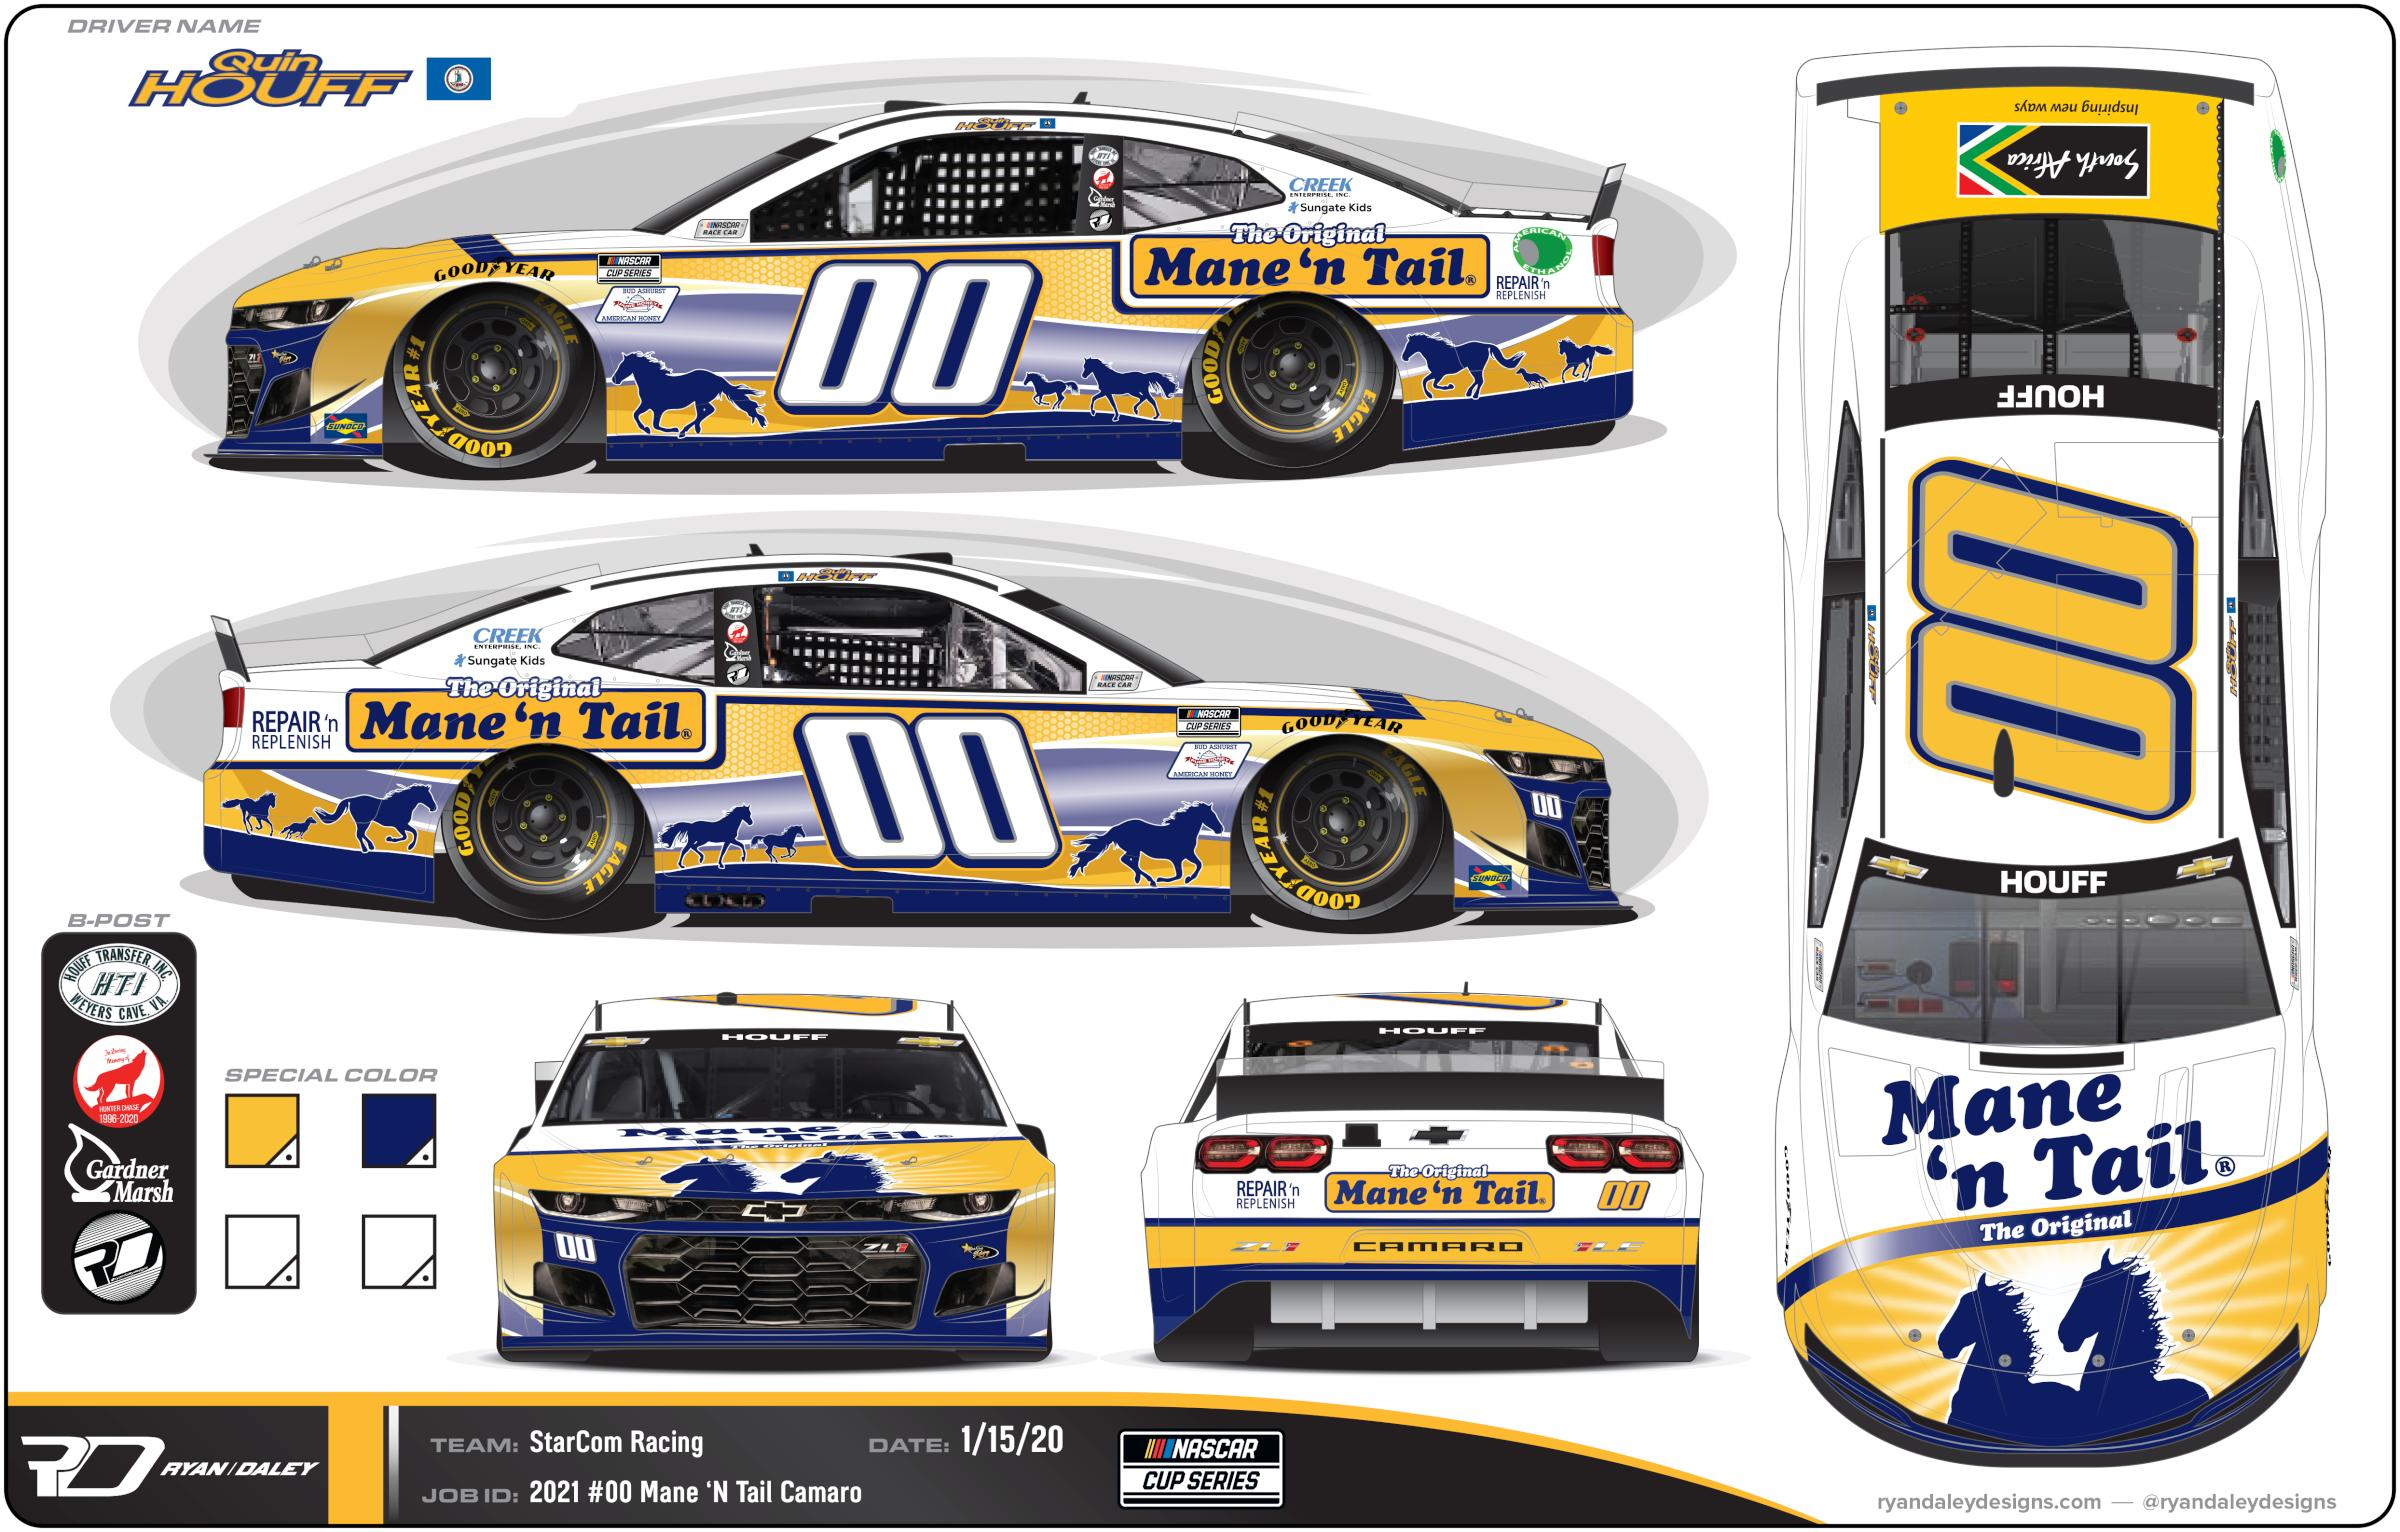 Preview of Official 2021 #00 Quin Houff Mane n Tail No Numbers by Ryan Daley